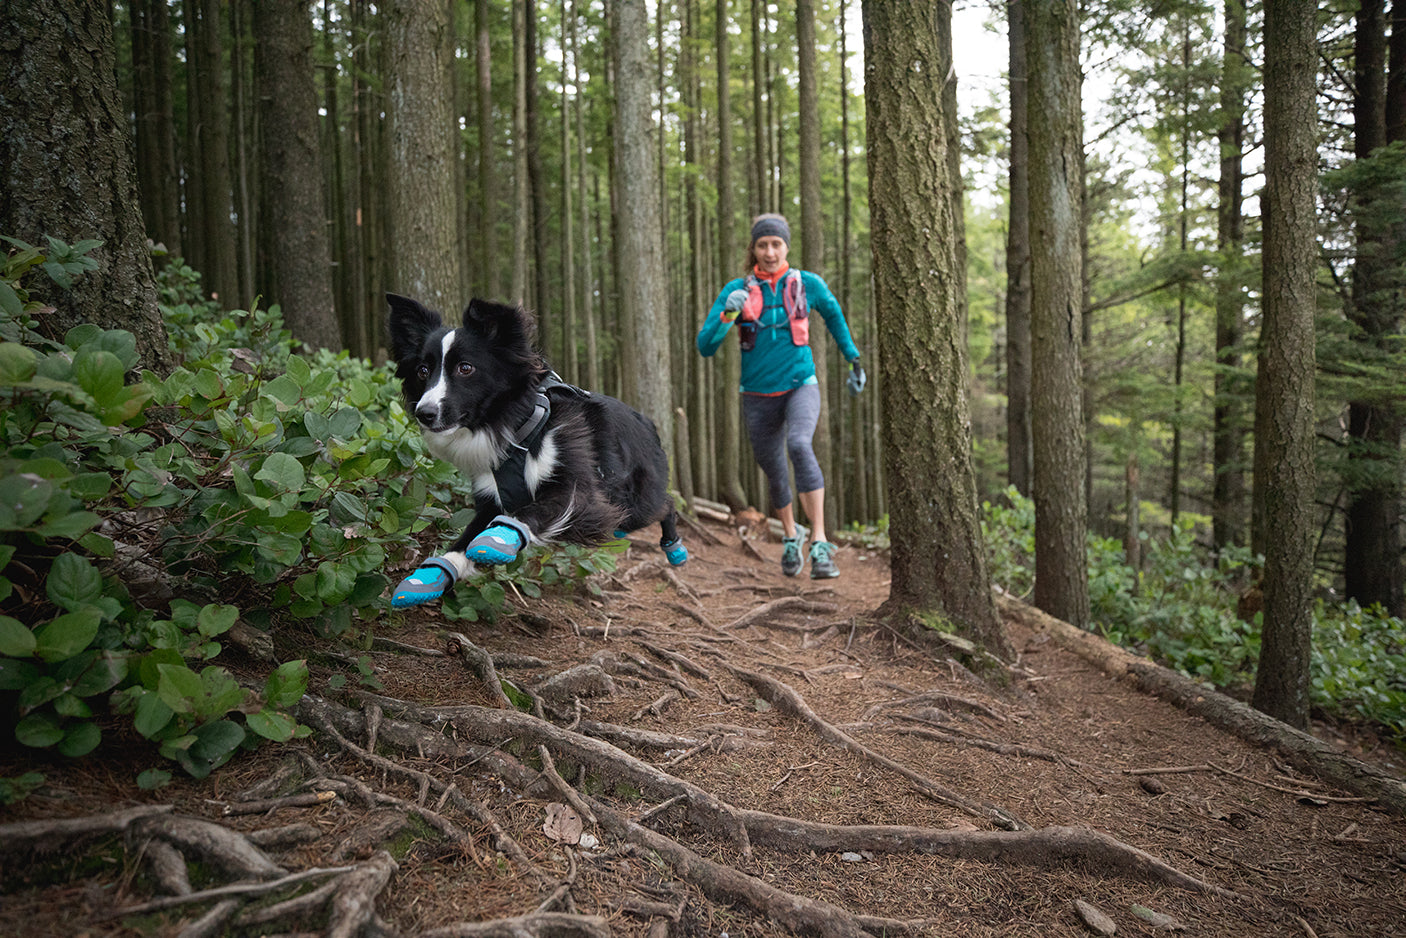 Dog PD wearing grip trex dog boots leaps over roots ahead of human Krissy on trail.